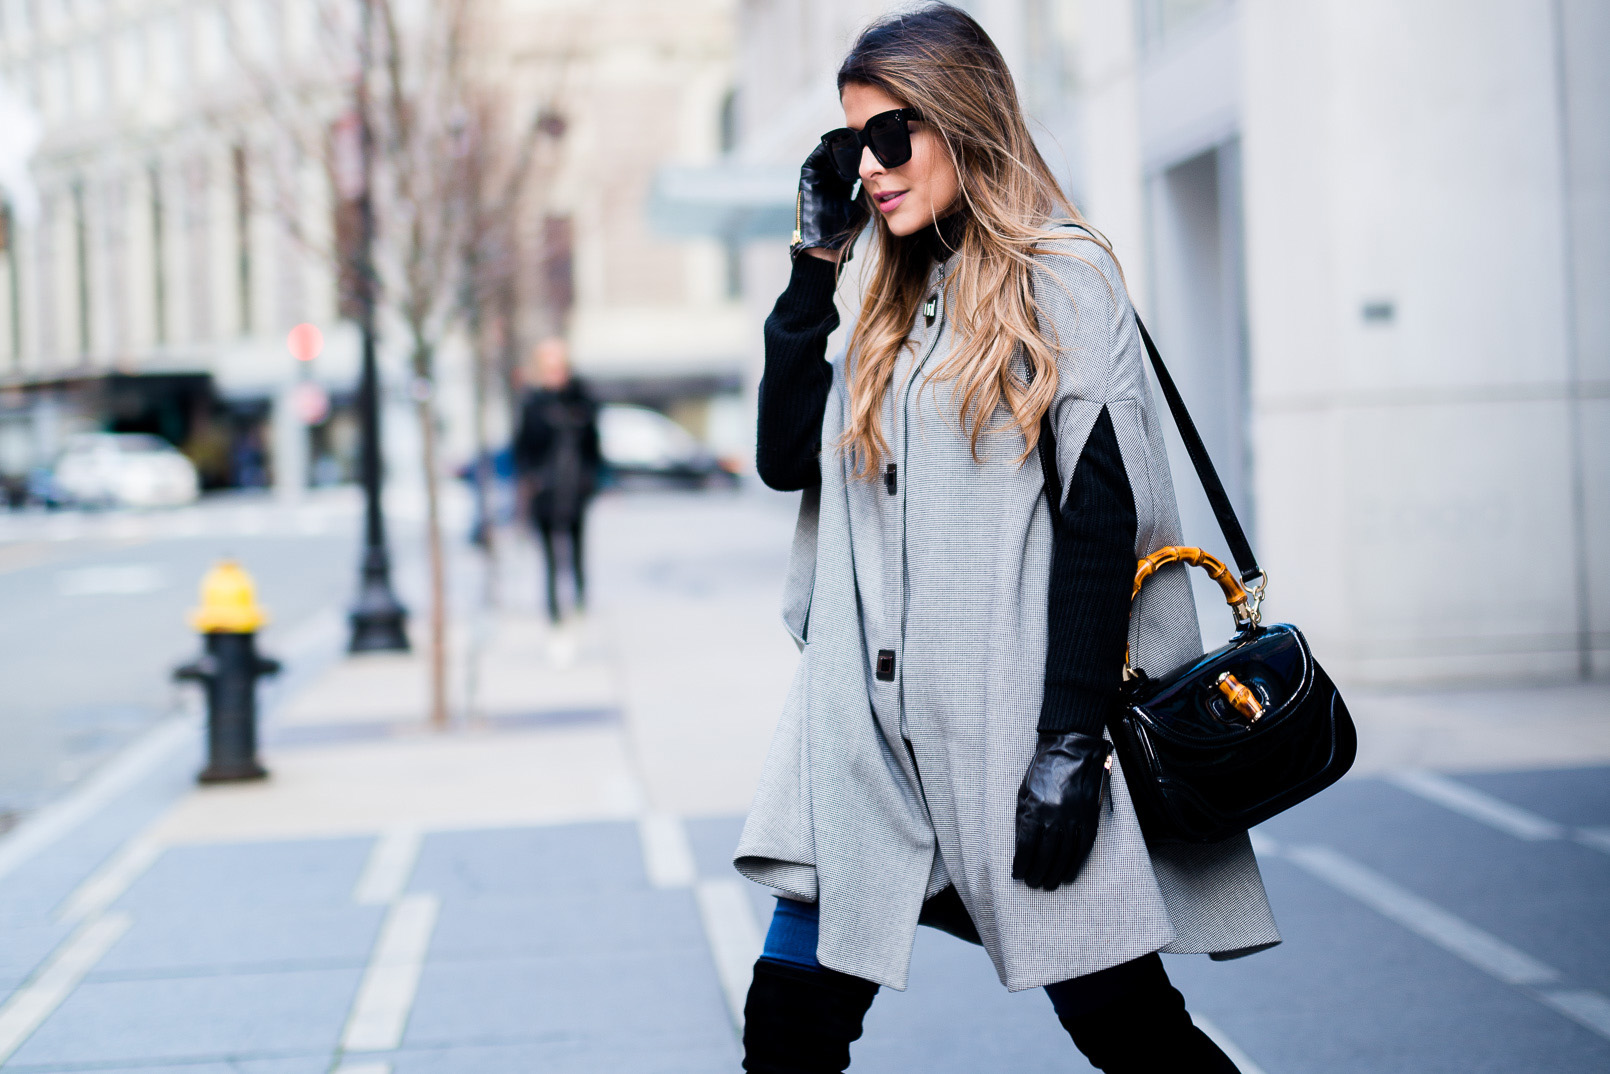 Mango-houndstooth-pattern-cape-Skinny-jeans-Delman-over-the-knee-boots-Gucci-Bamboo-Top-Handle-Bag-Celine-Sunglasses-1-copy.jpg